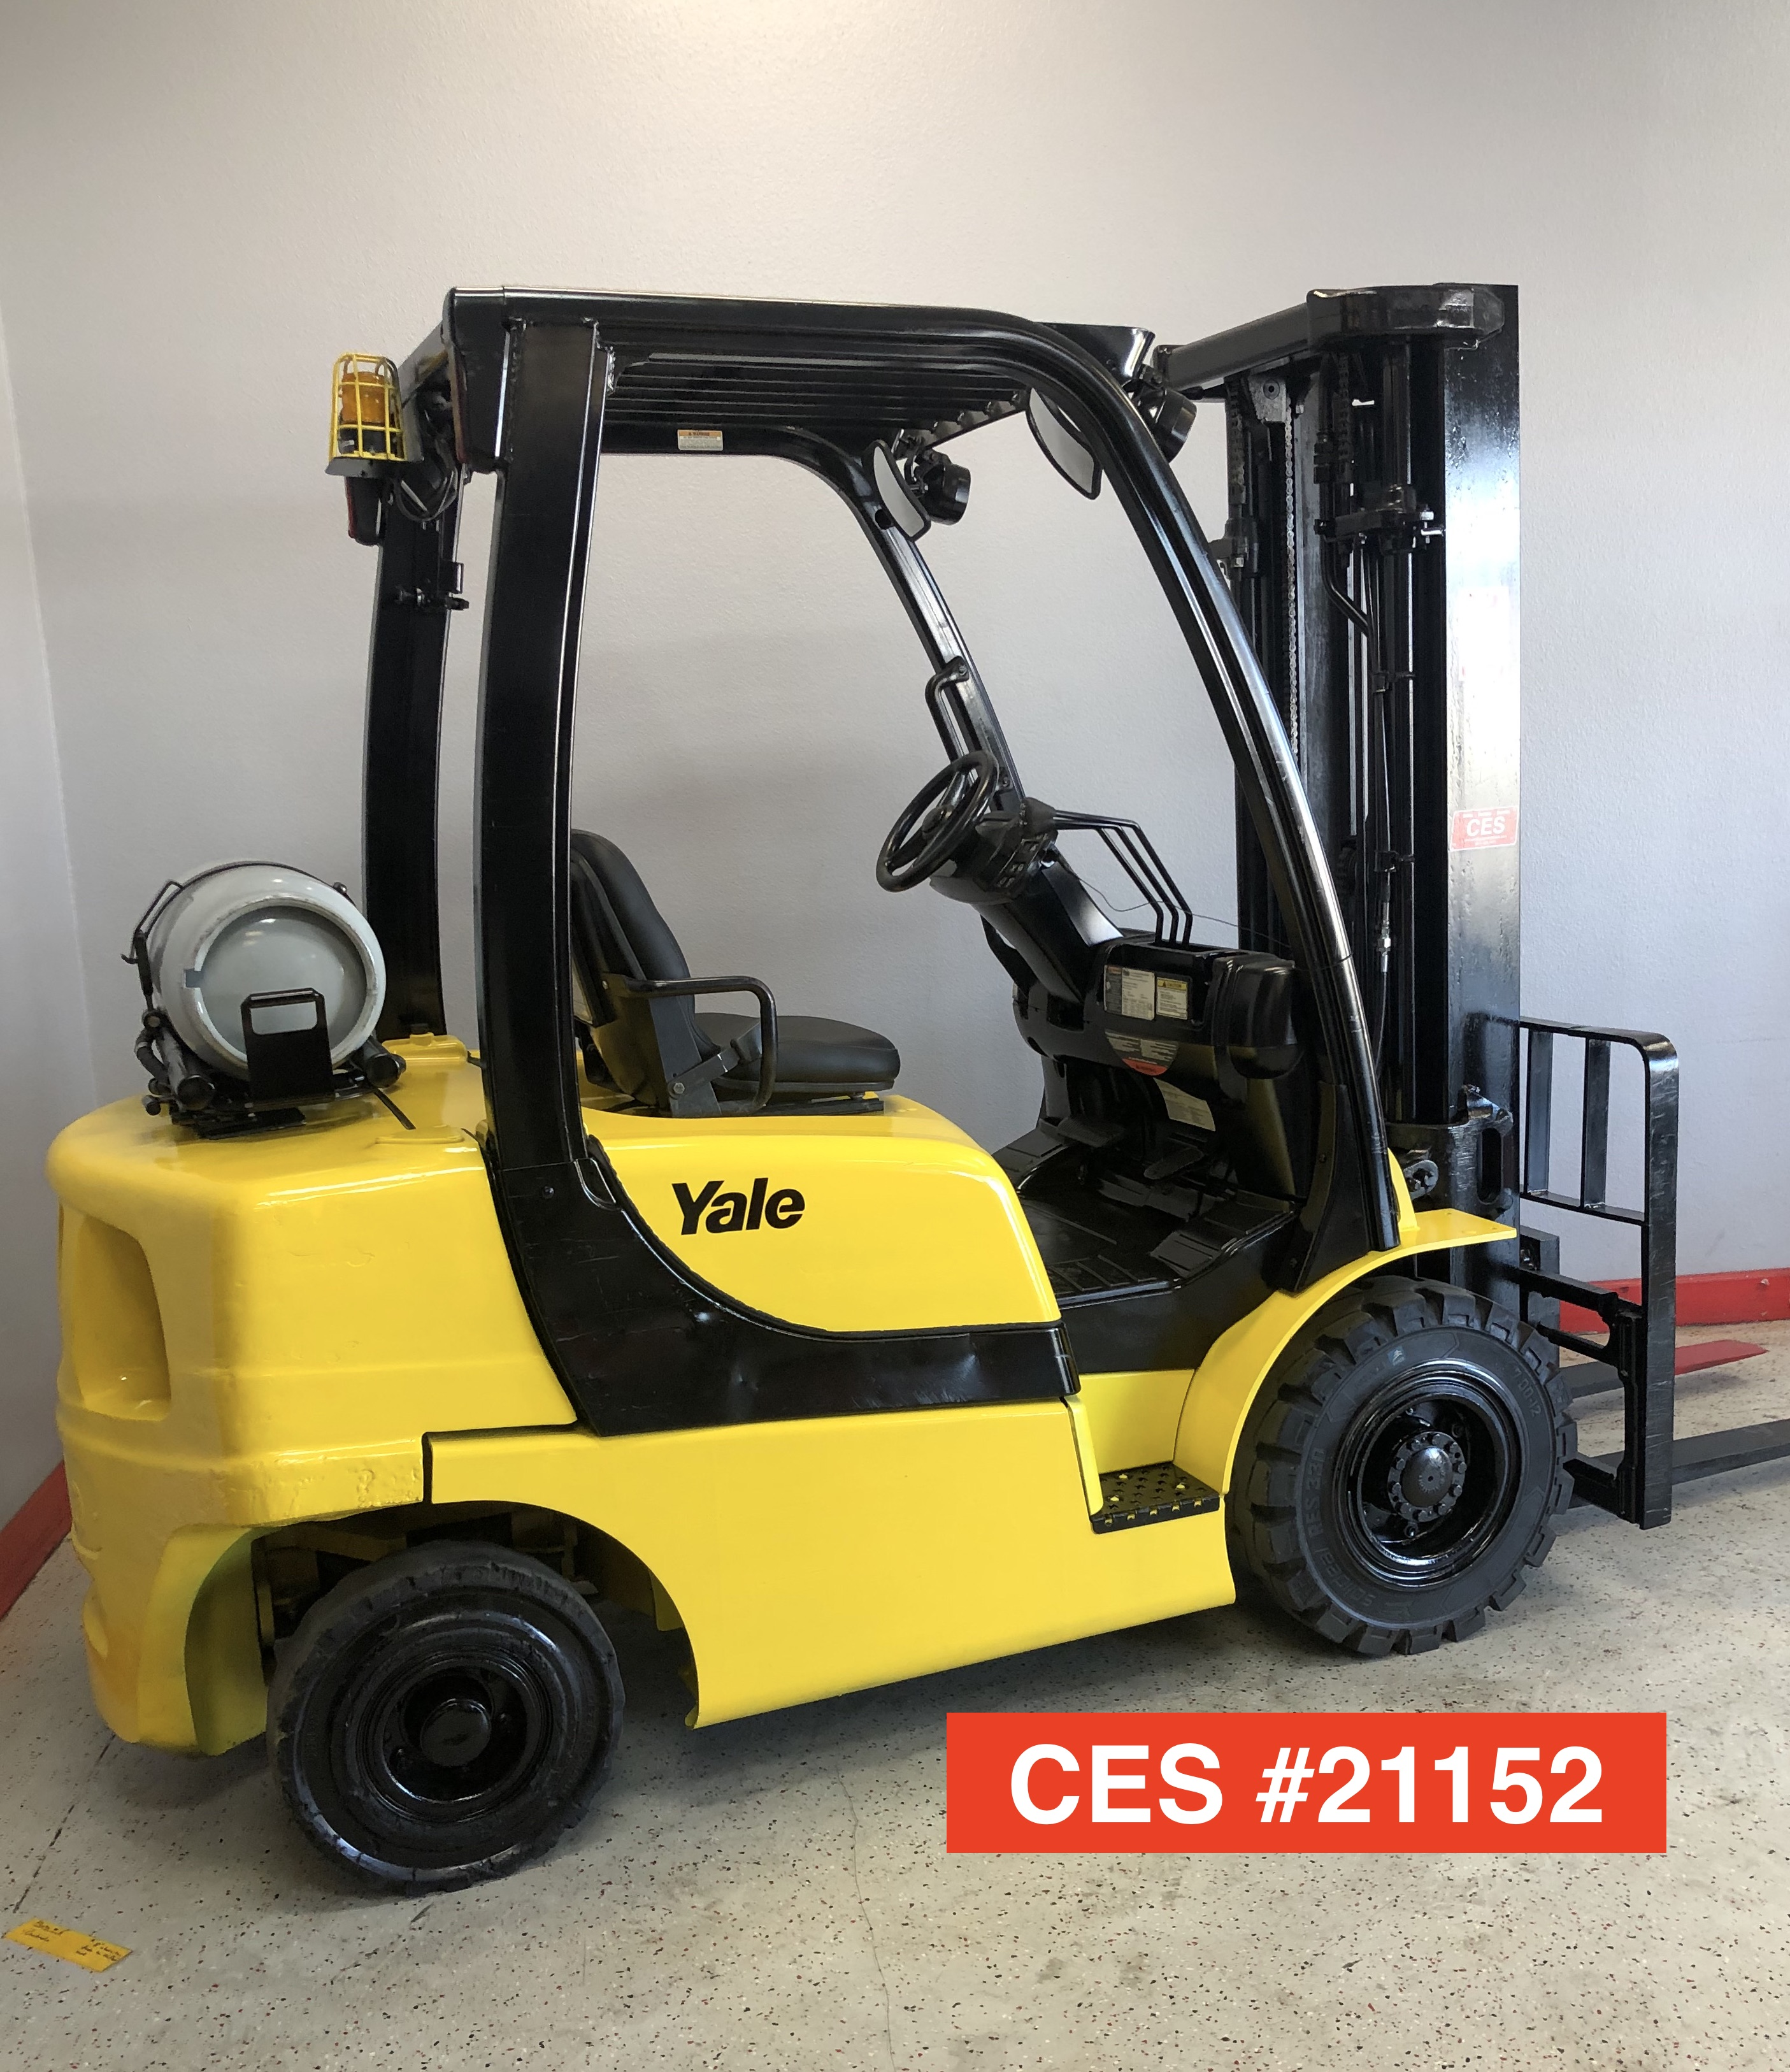 CES #21152 Yale Pneumatic Propane Forklift GLP050